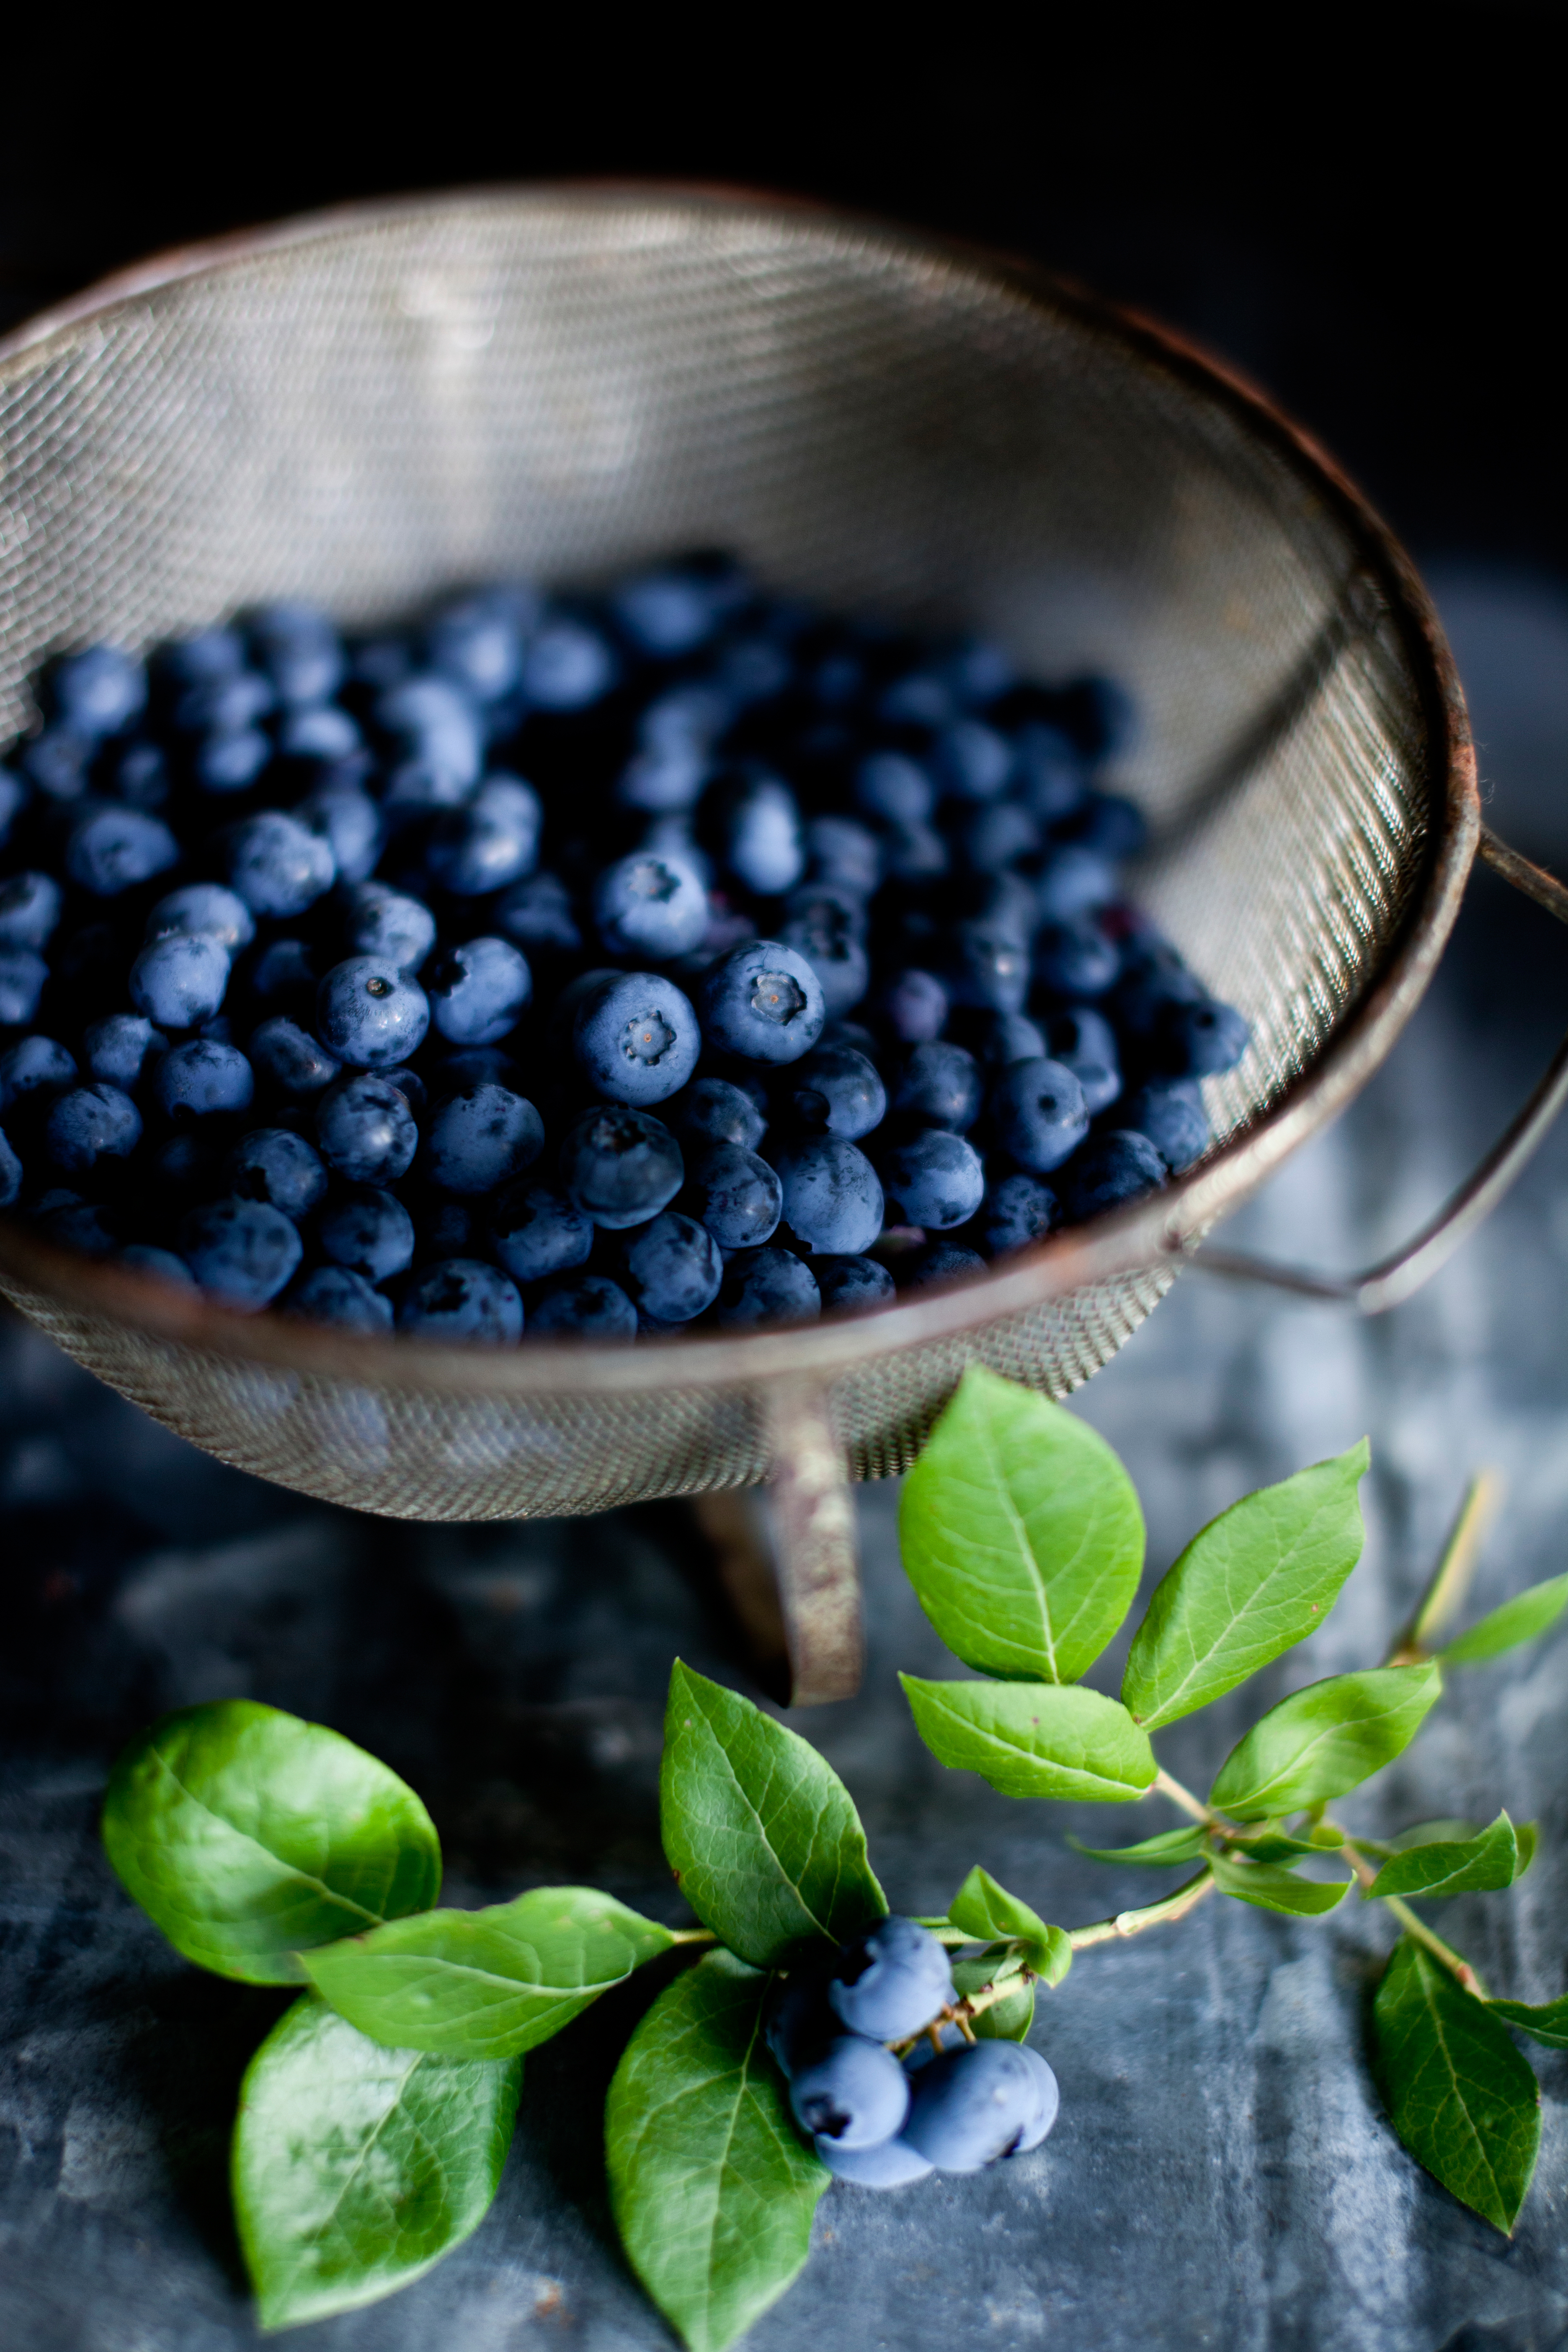 Growing Blueberries in a Garden